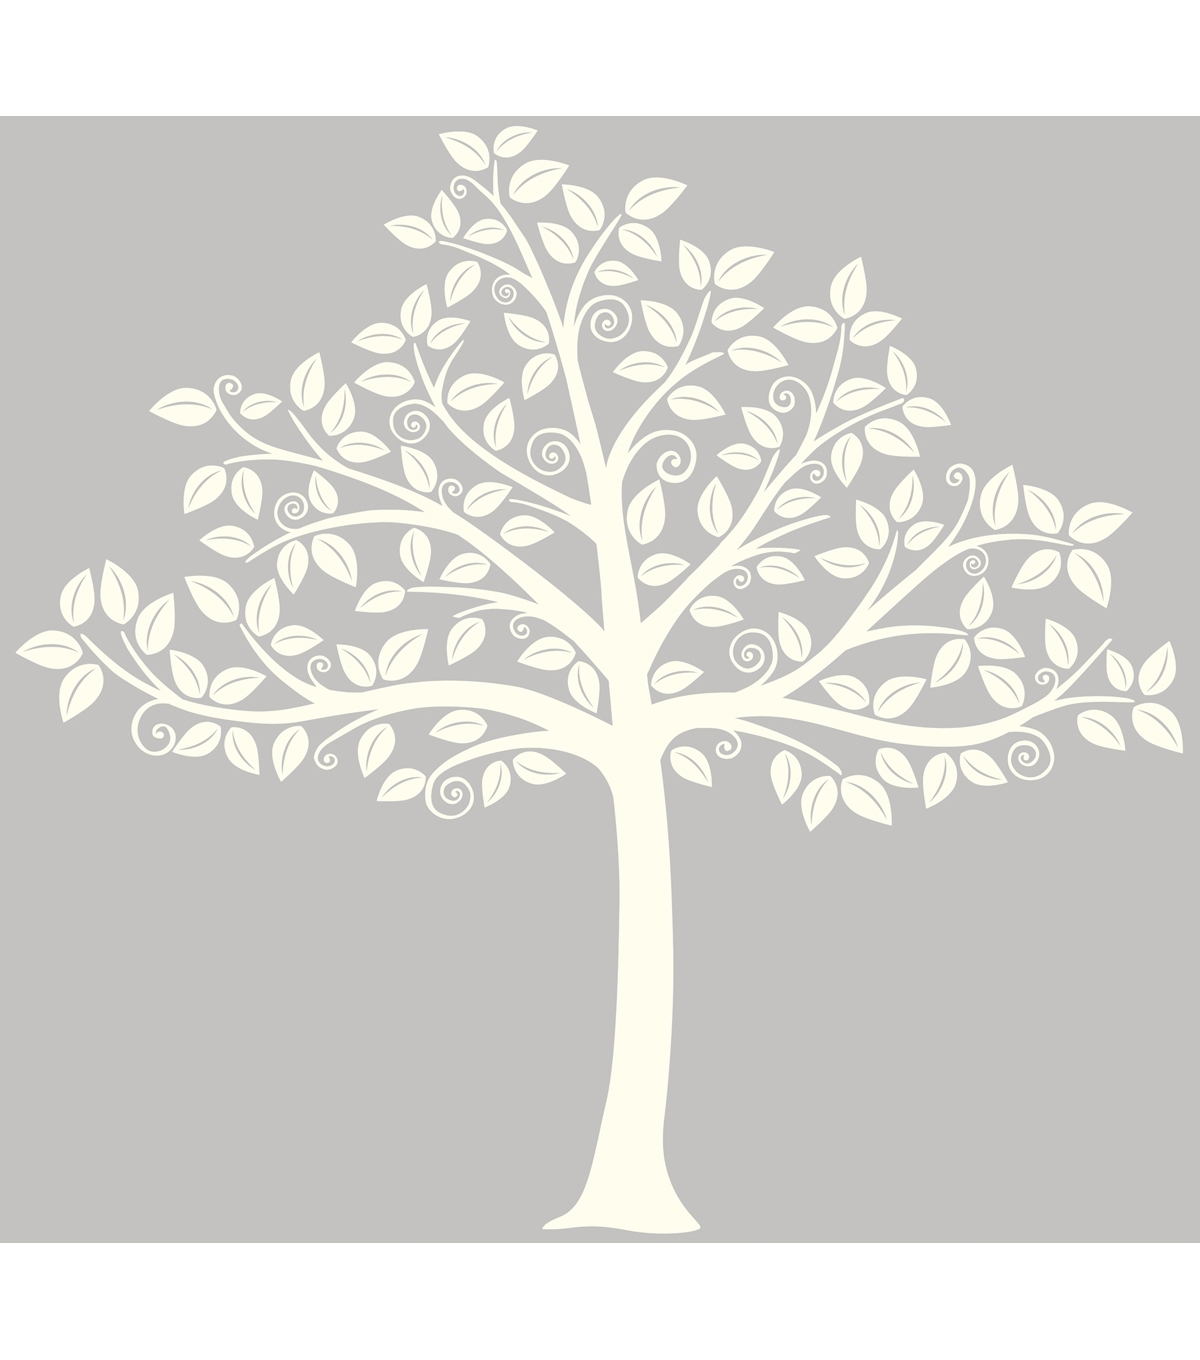 Wall Pops Silhouette Tree Wall Art Decal Kit, 129 Piece Set | Joann Throughout Most Recently Released Joann Fabric Wall Art (View 15 of 15)